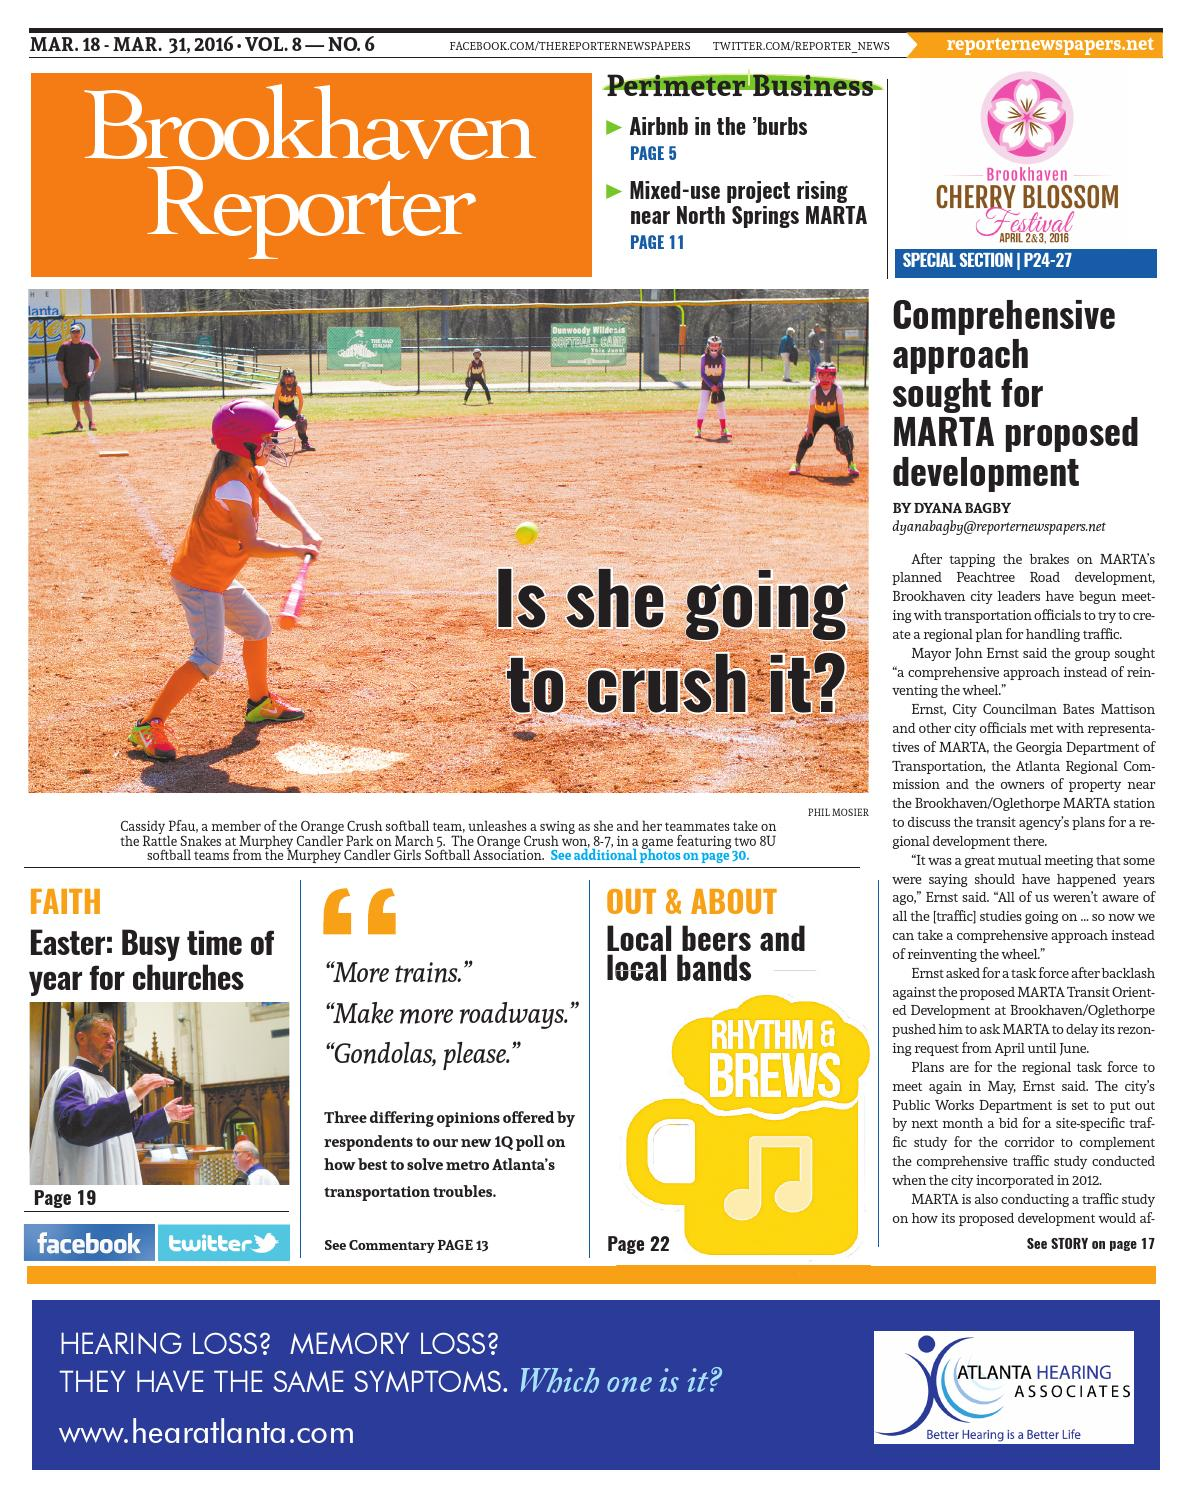 03 18 2016 brookhaven reporter by reporter newspapers issuu fandeluxe Choice Image